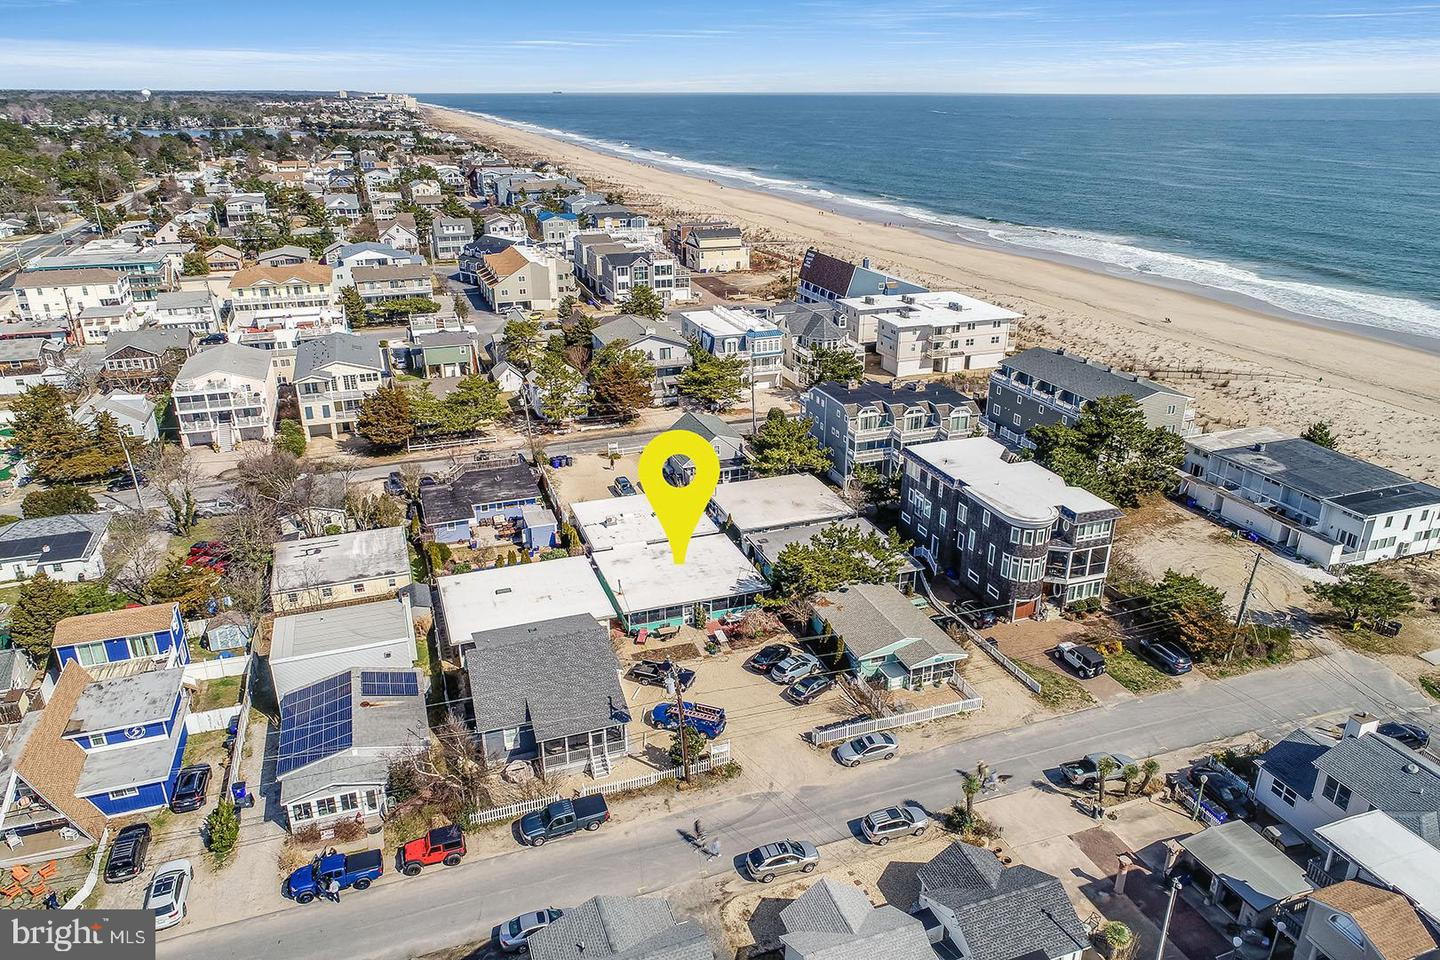 DESU179380-304534774167-2021-03-29-20-56-14 Browse our Lewes, Dewey, and Rehoboth Beach Real Estate Listings - Rehoboth Beach Real Estate - Bryce Lingo and Shaun Tull REALTORS, Rehoboth Beach, Delaware